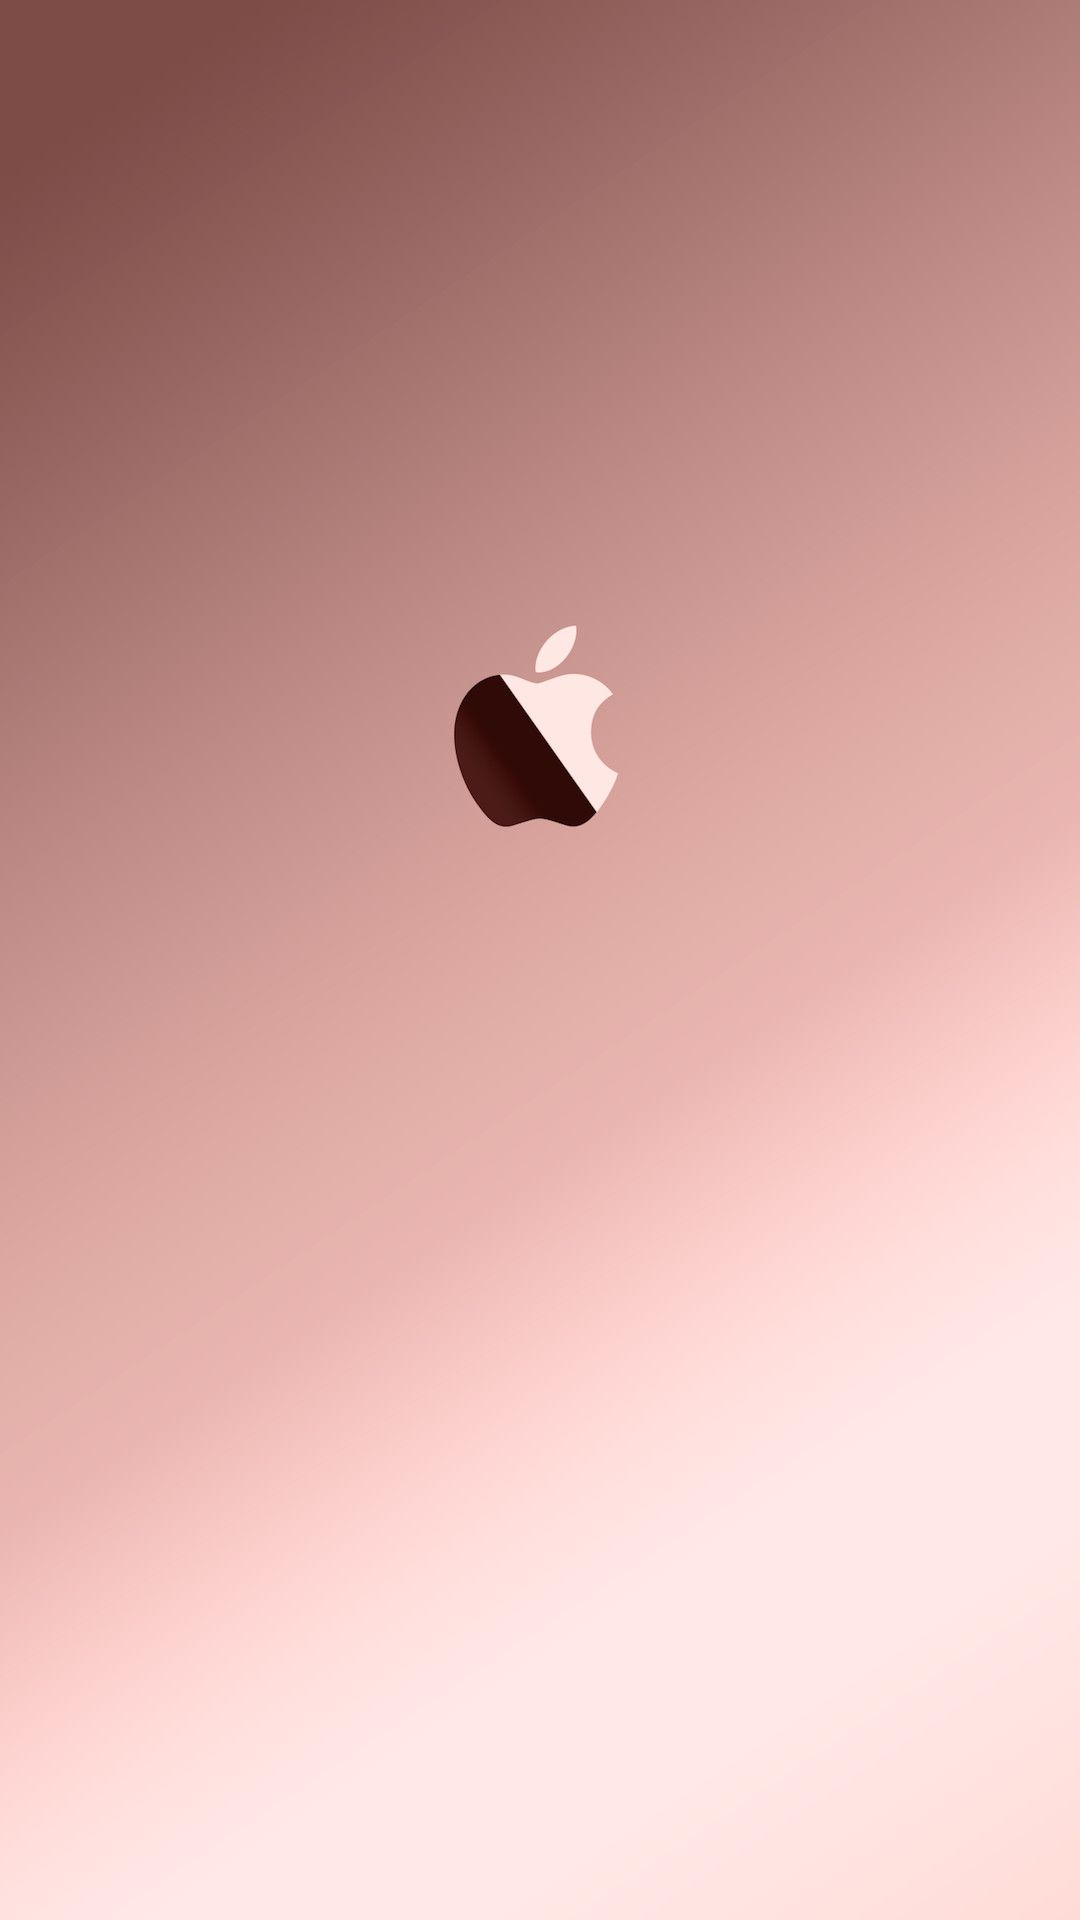 Rose Gold Cute Wallpaper 1080p Hupages Download Iphone